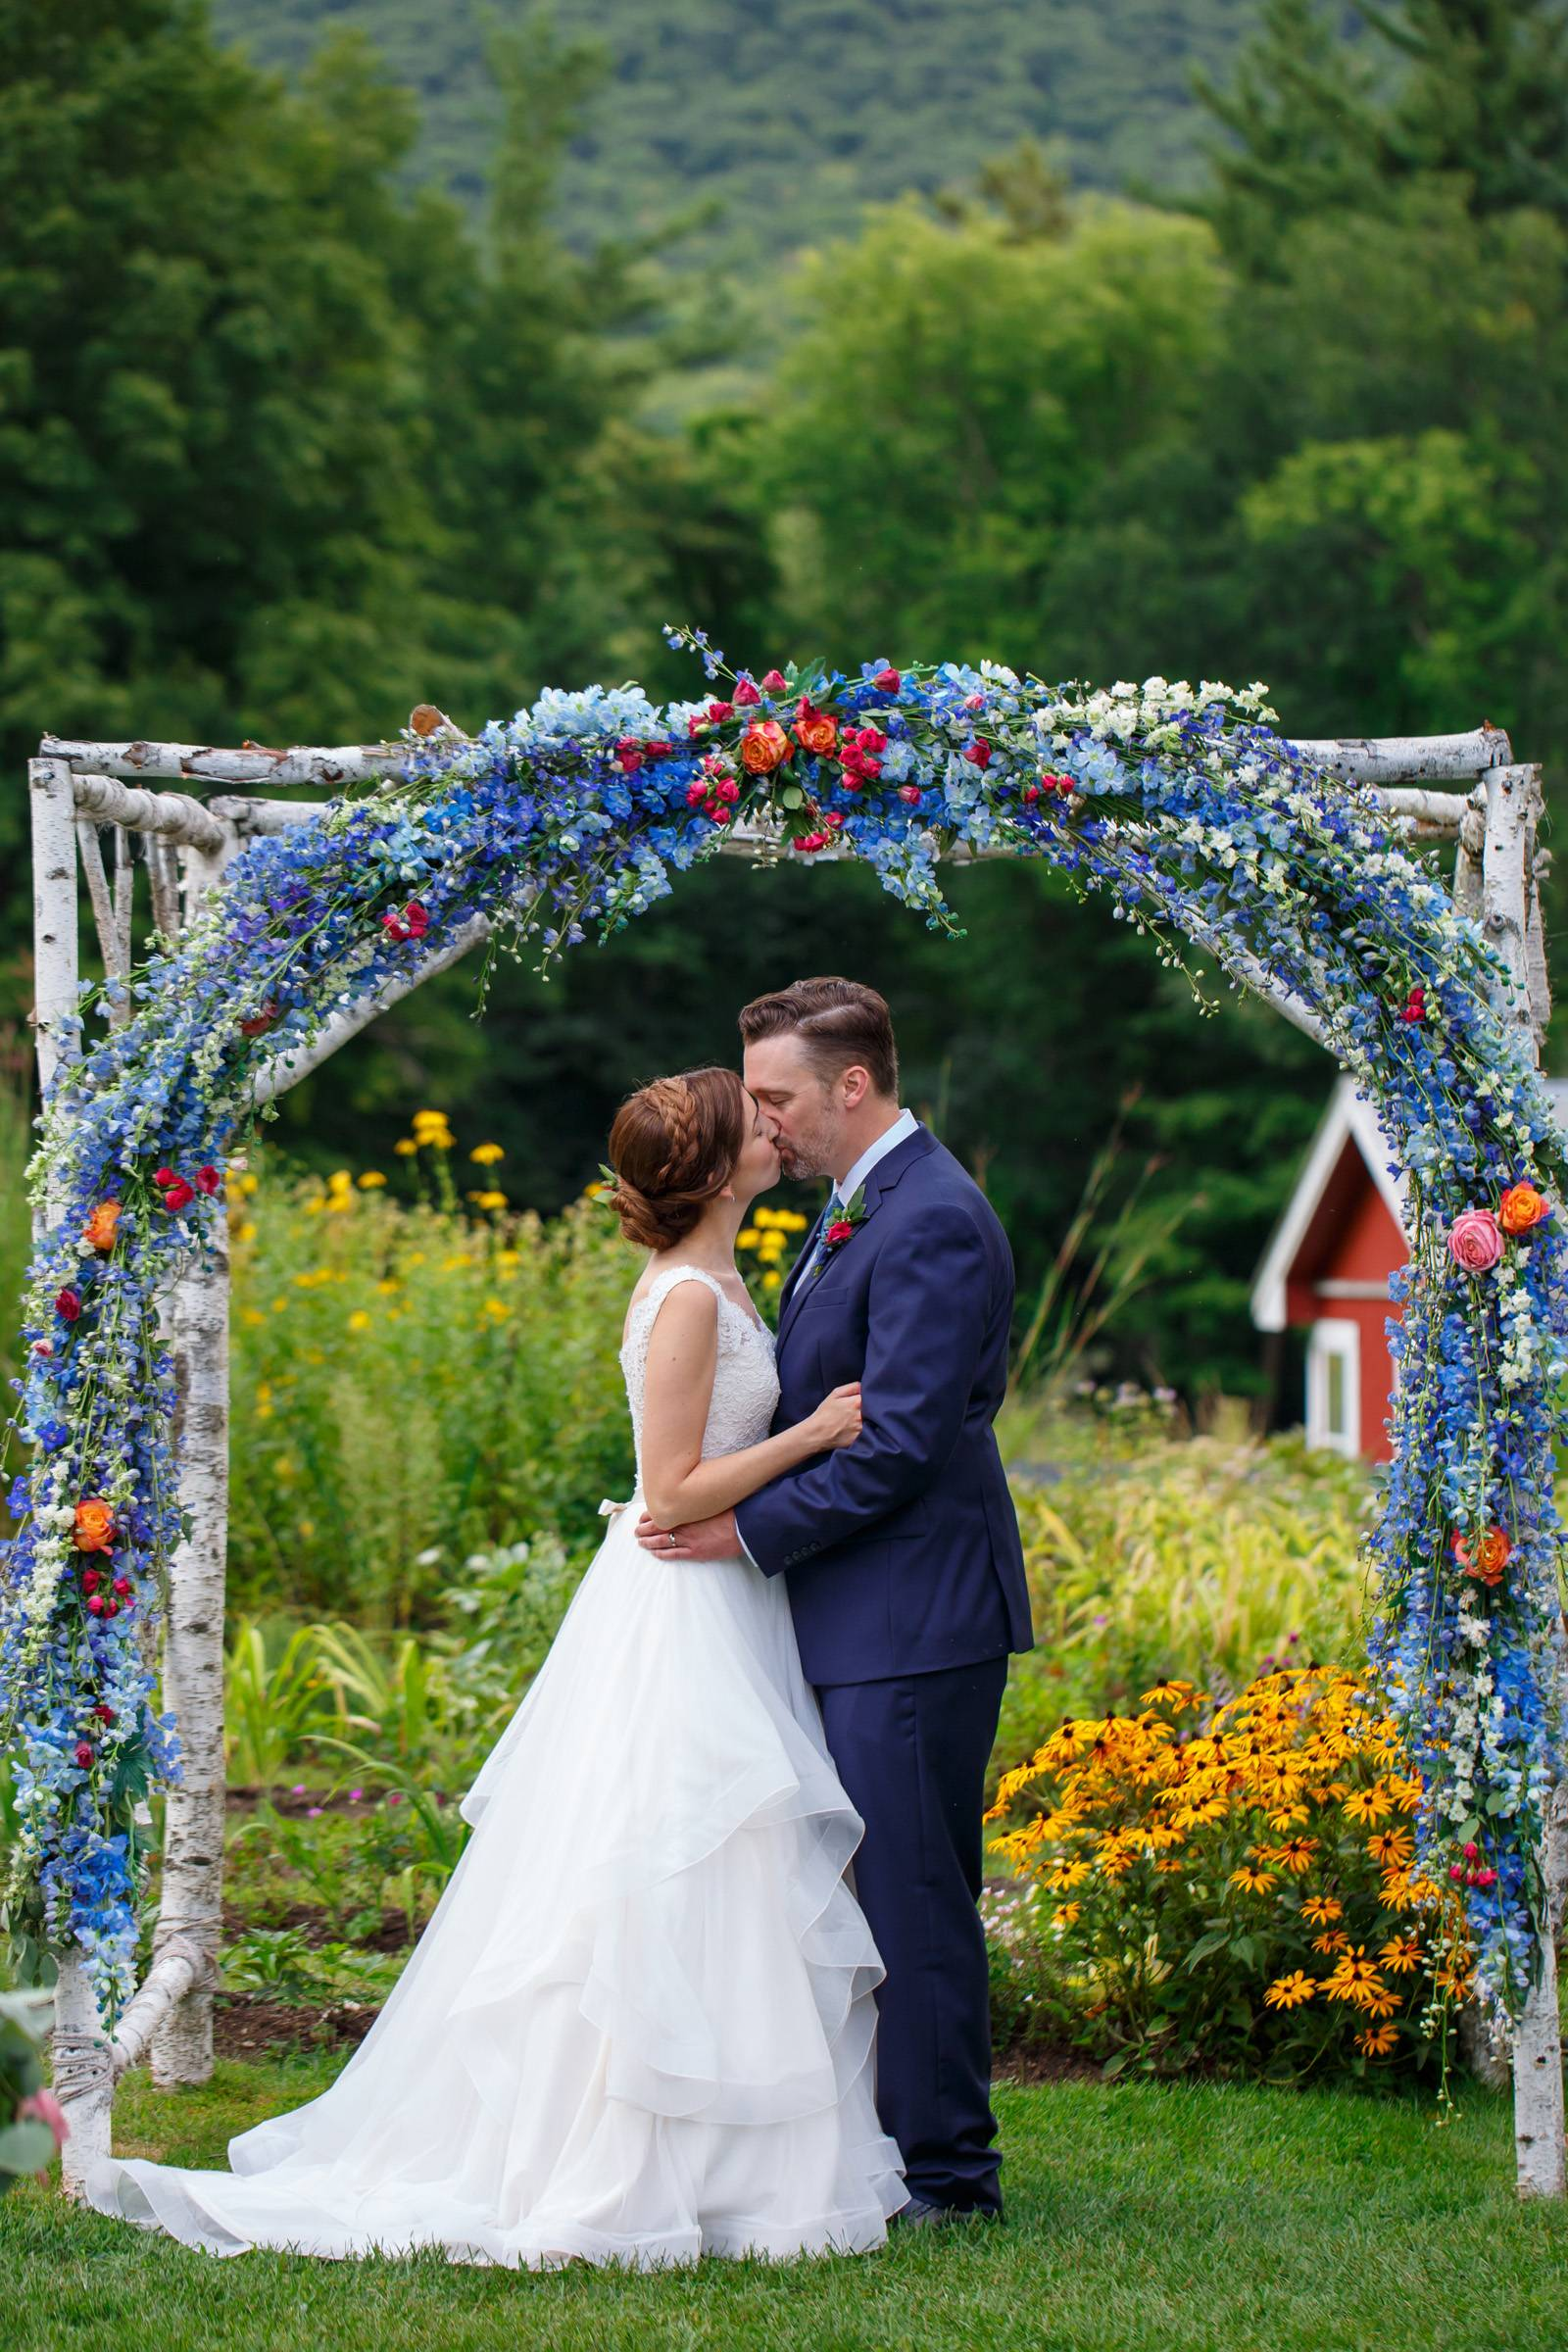 Blue floral ceremony arch drapery decor inspiration